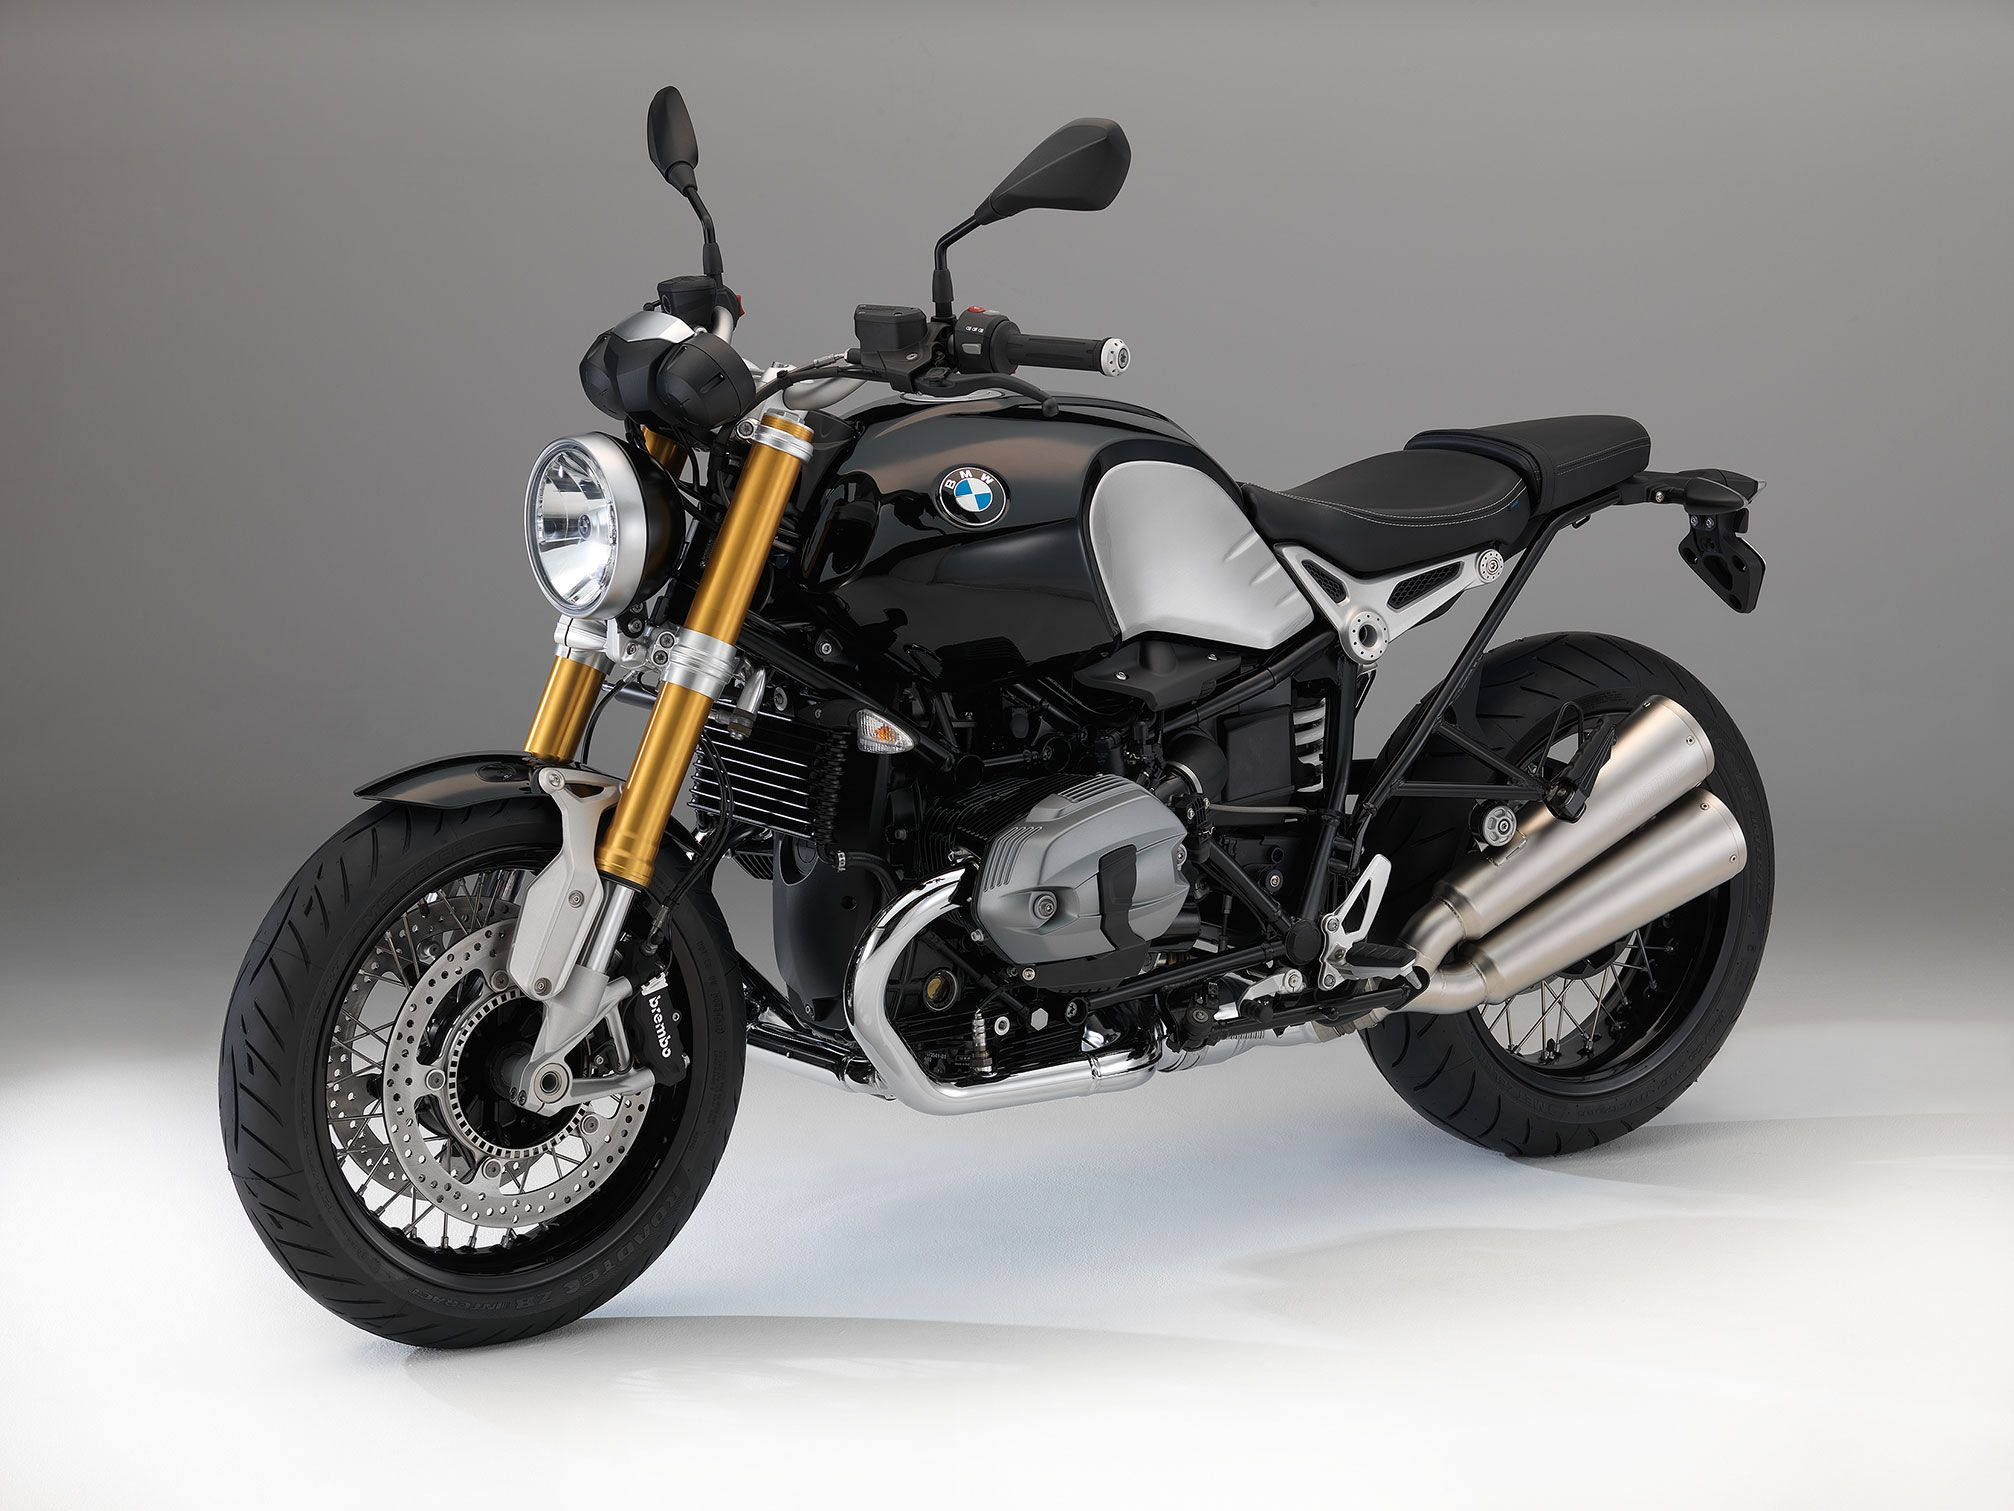 We have an RnineT available FOR SALE right now Hurry folks